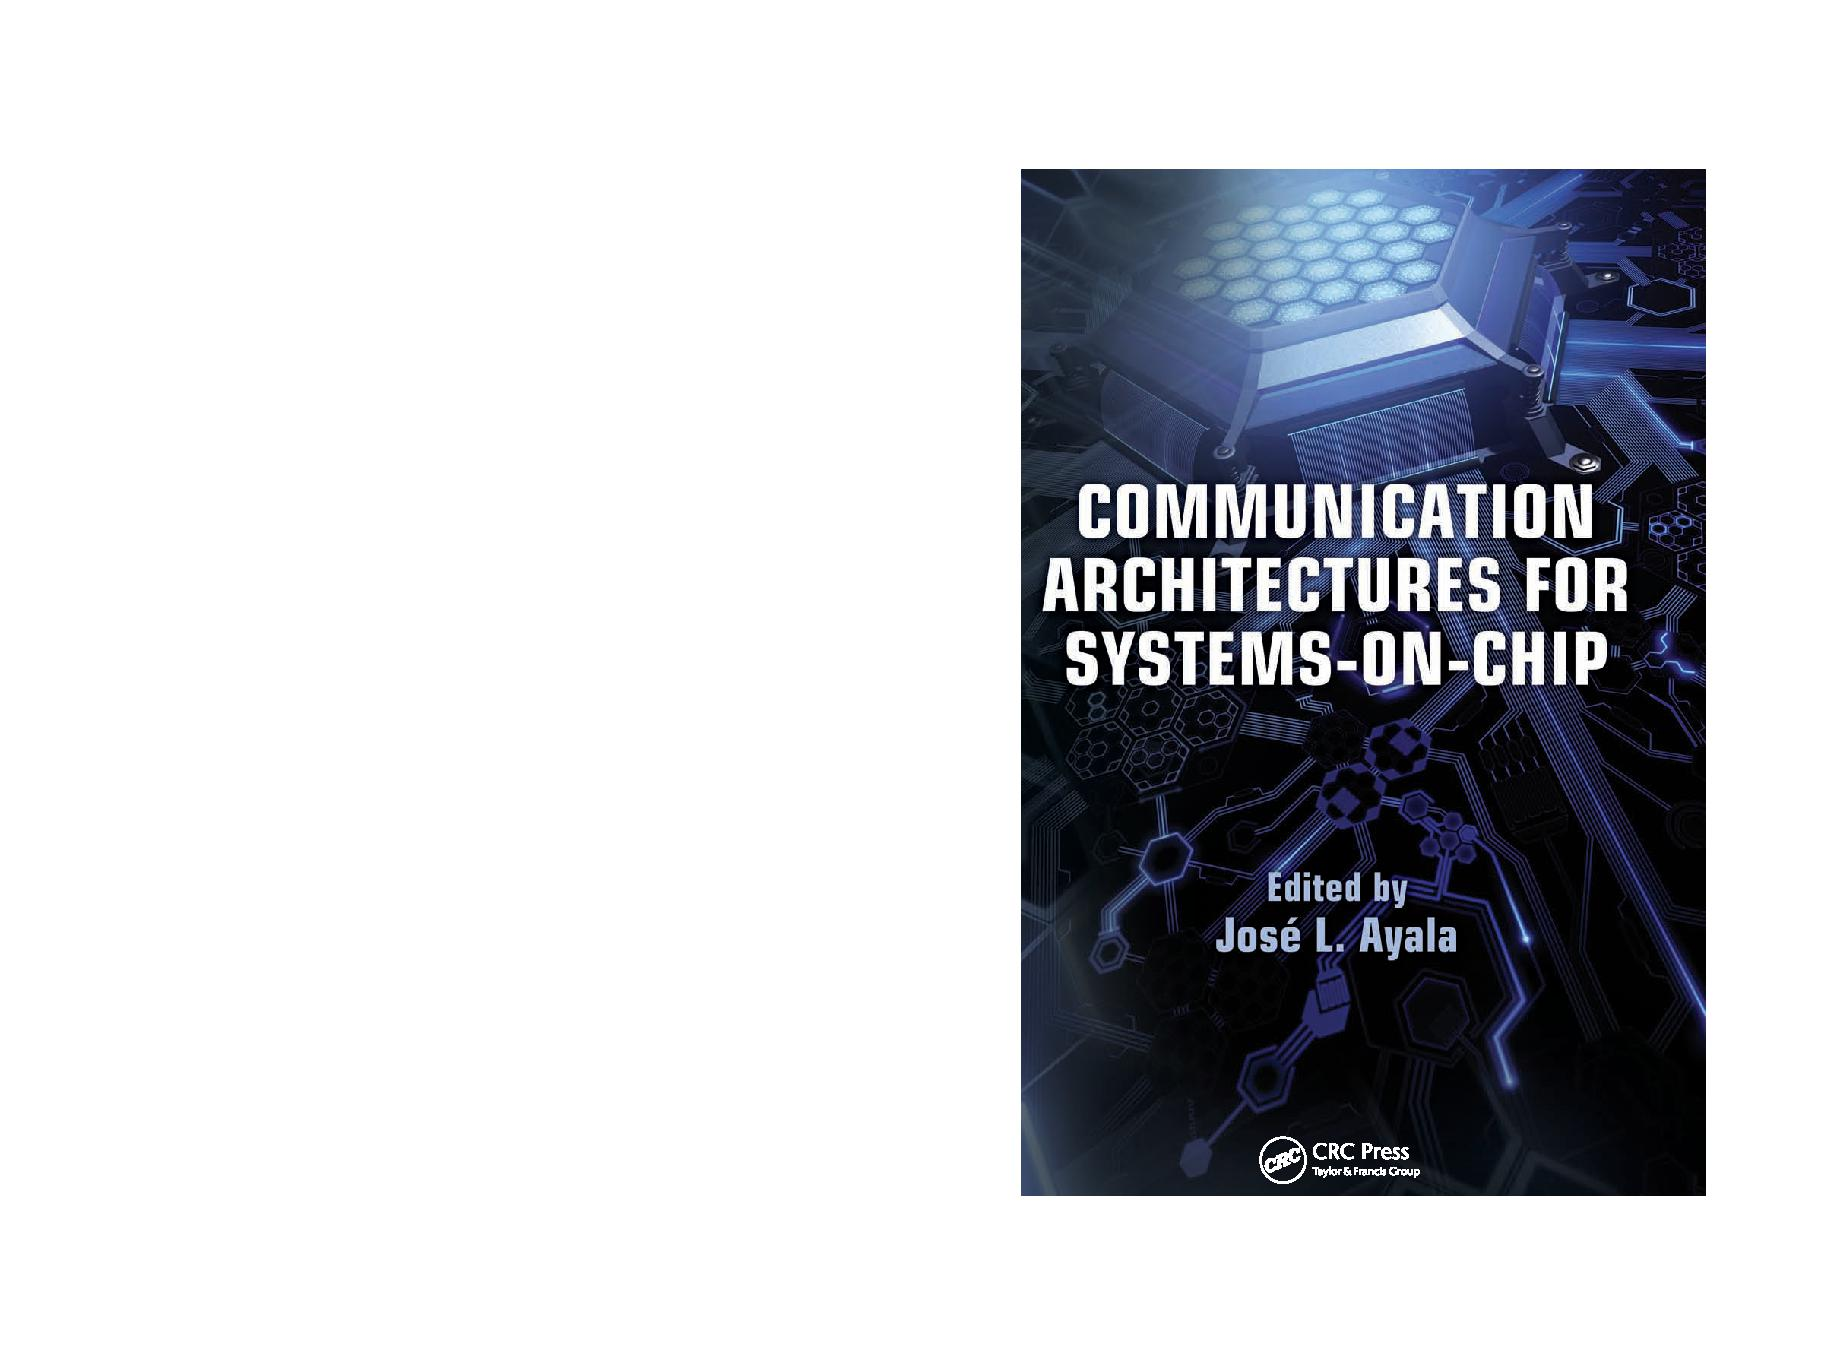 Communication Architectures for Systems-on-Chip